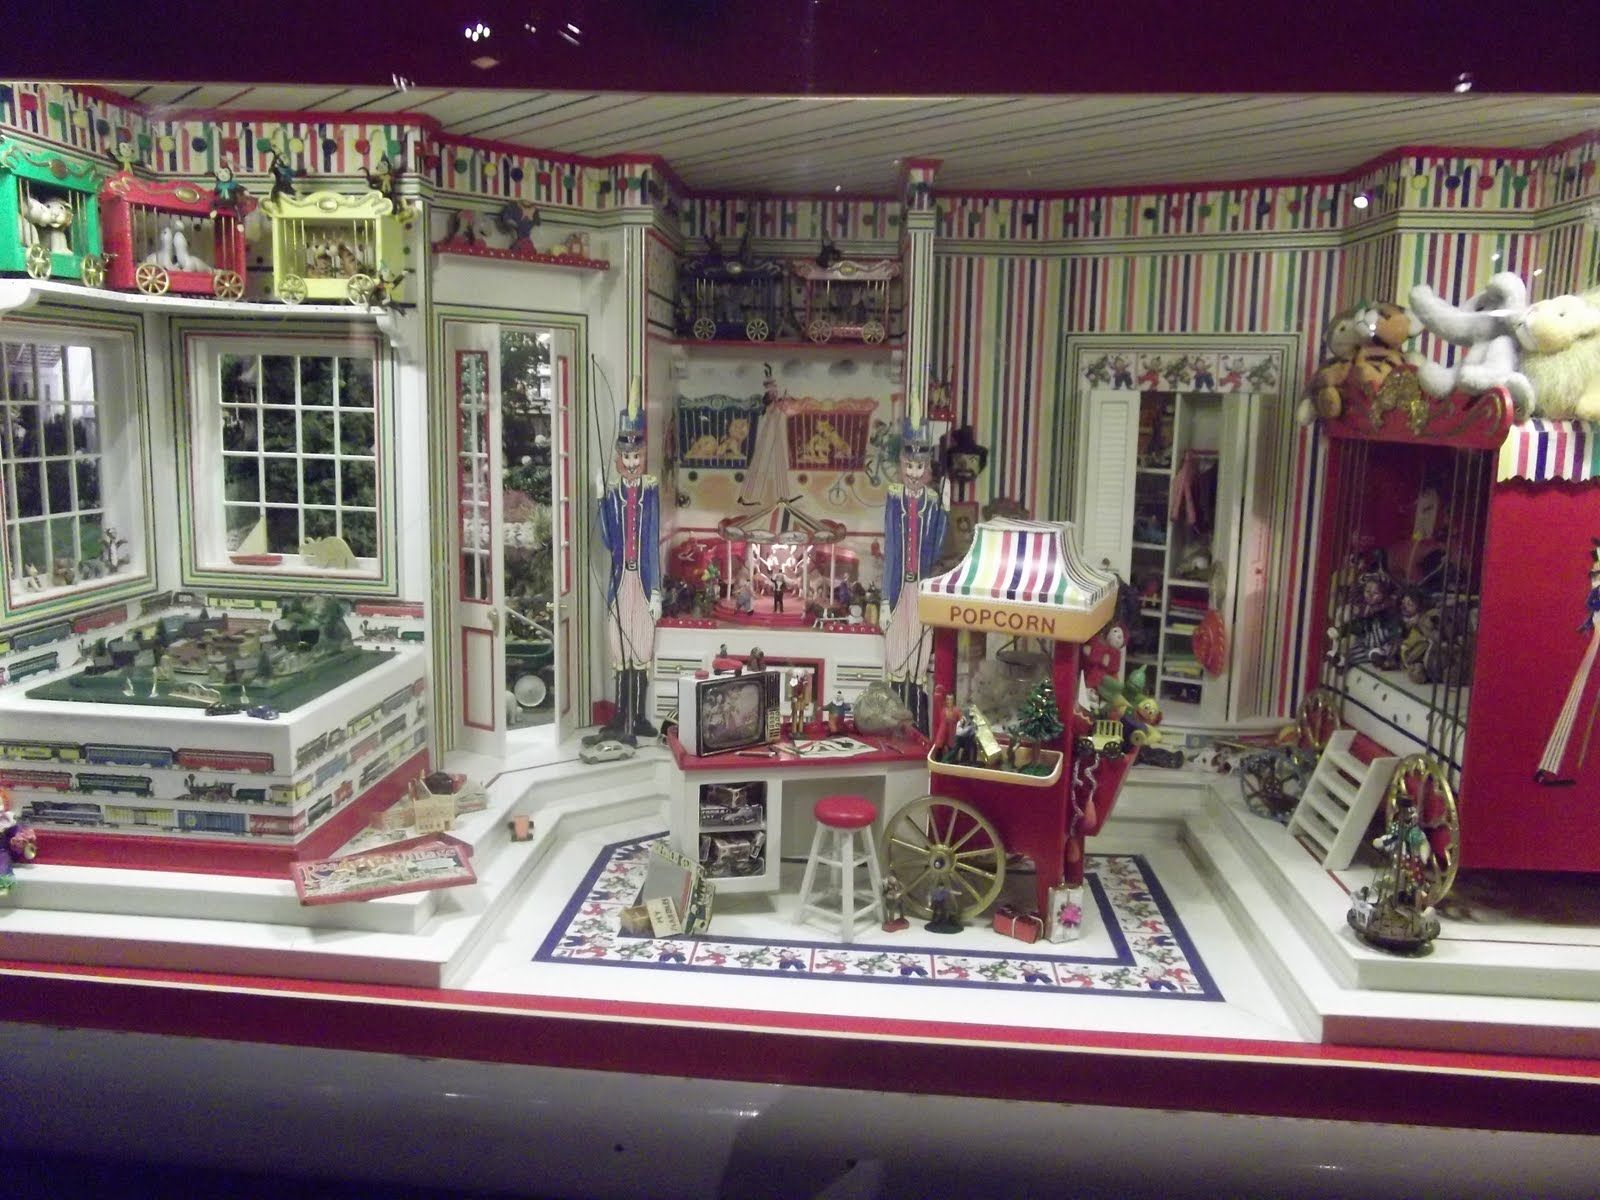 Miniature Toy Store in 1/12 scale.